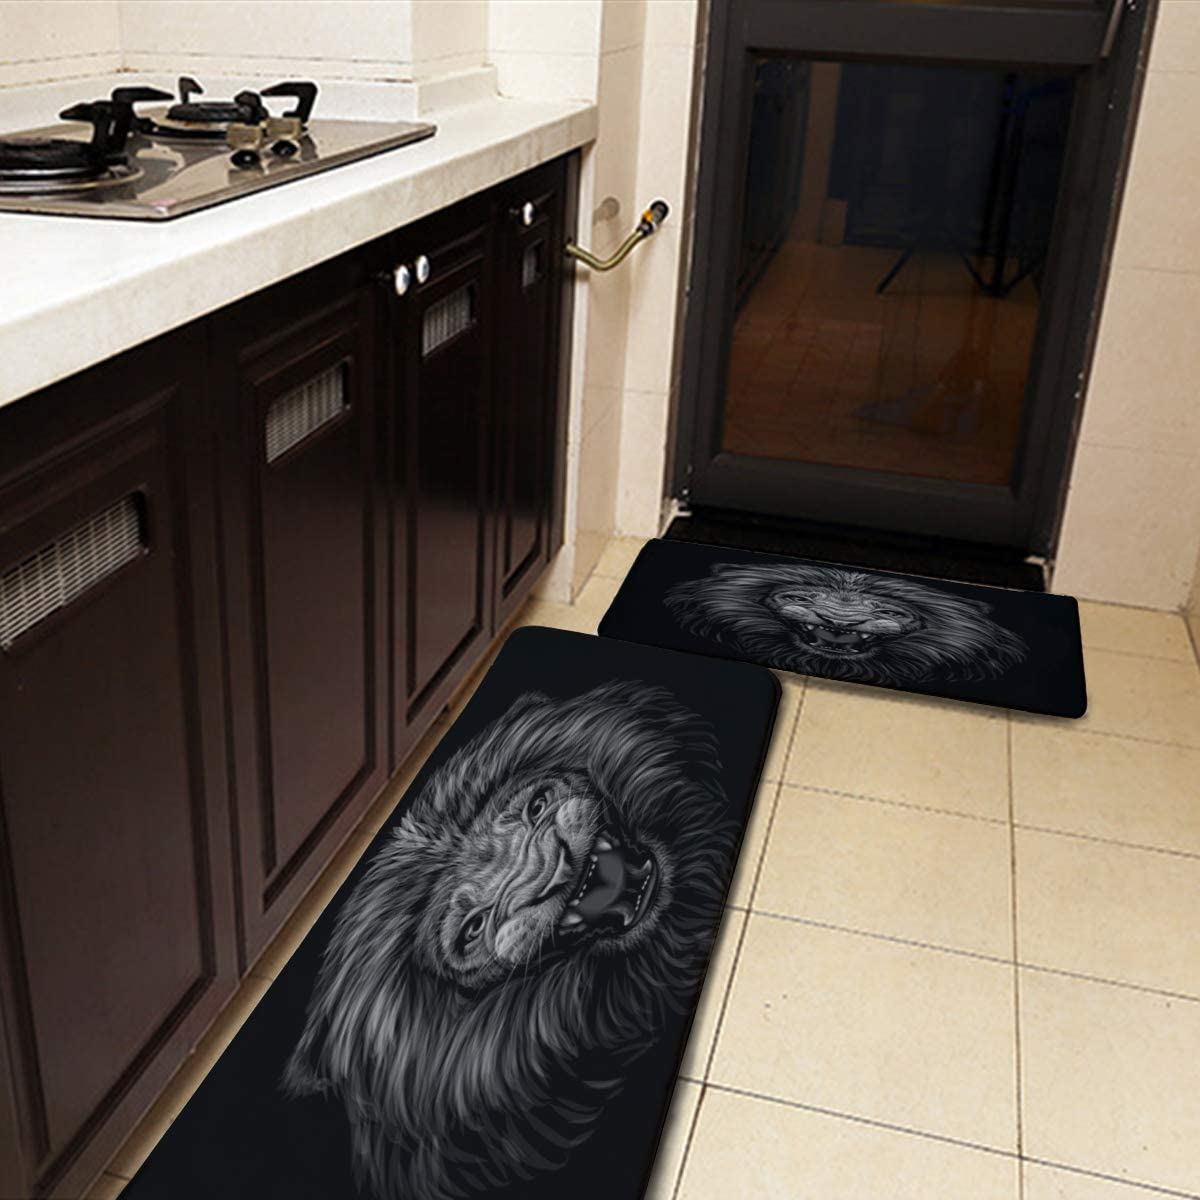 Kitchen Mat Set Of 2 Glowing Butterflies And Stars On Black Anti Fatigue Waterproof Cushioned Soft Kitchen Rugs Non Slip Comfort Floor Mats Washable Doormat Bathroom Runner Area Rug Carpet Kitchen Table